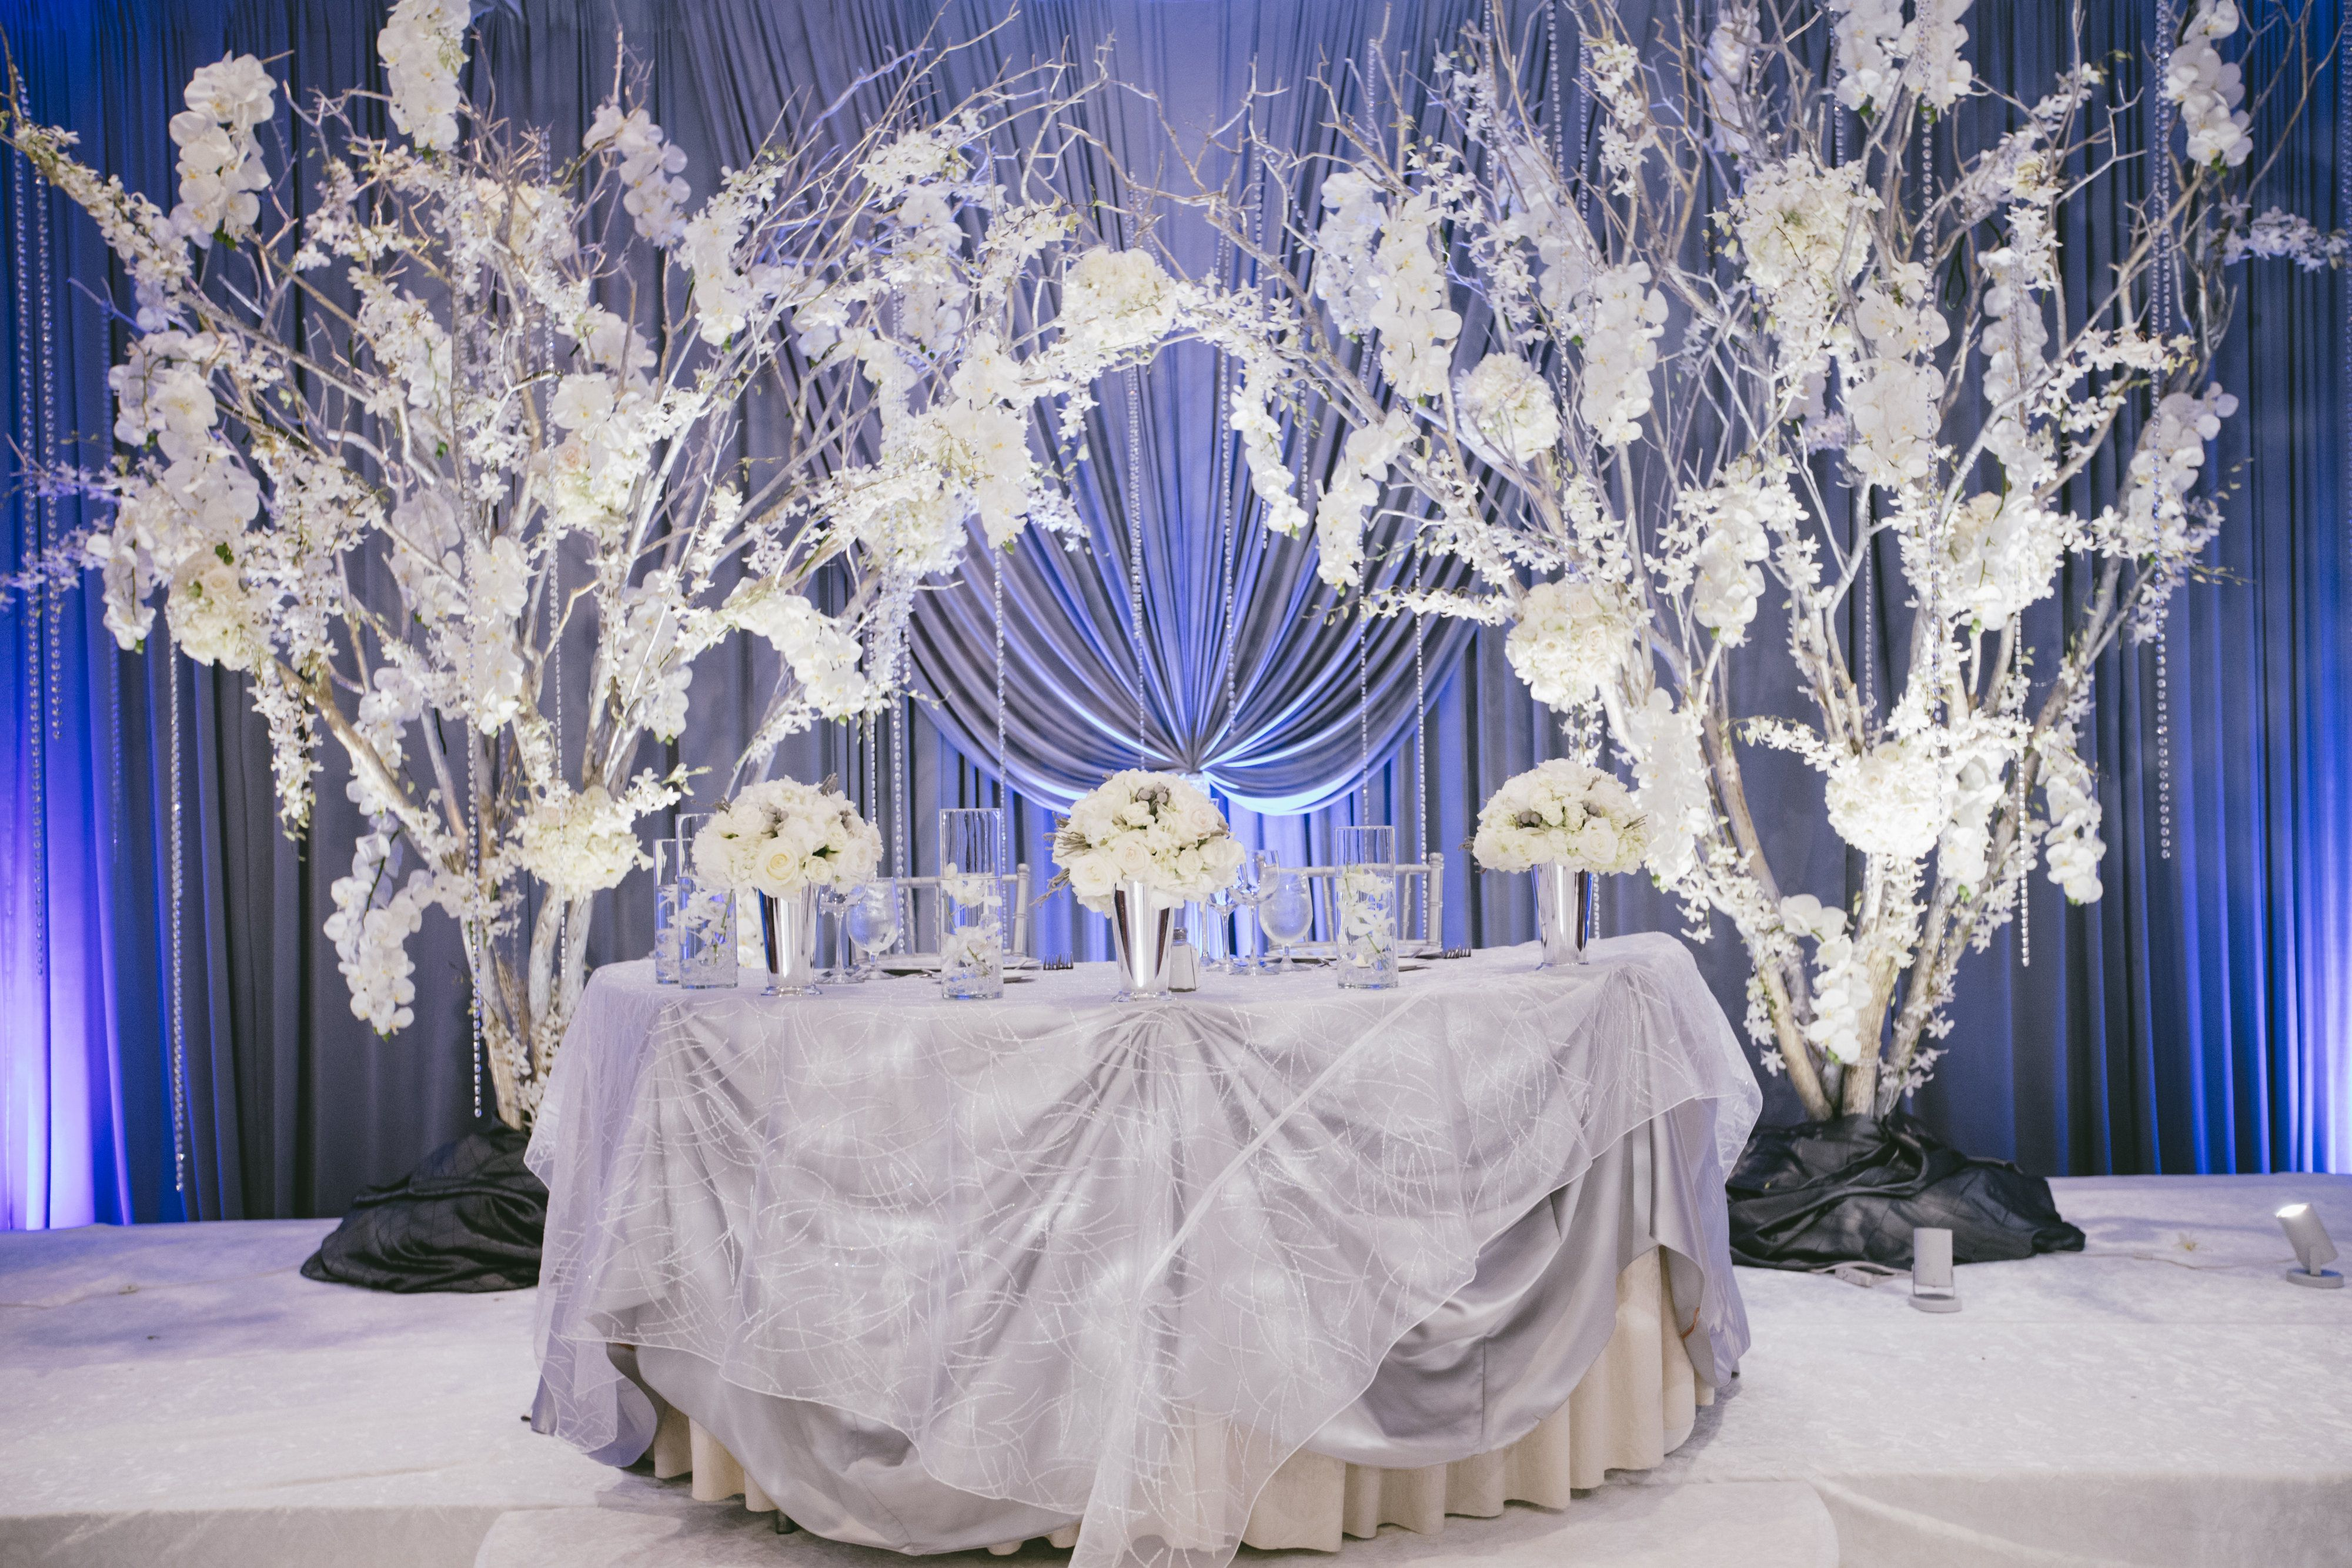 Winter Wedding Bridal Stage Decor Sweetheart Table Decor For